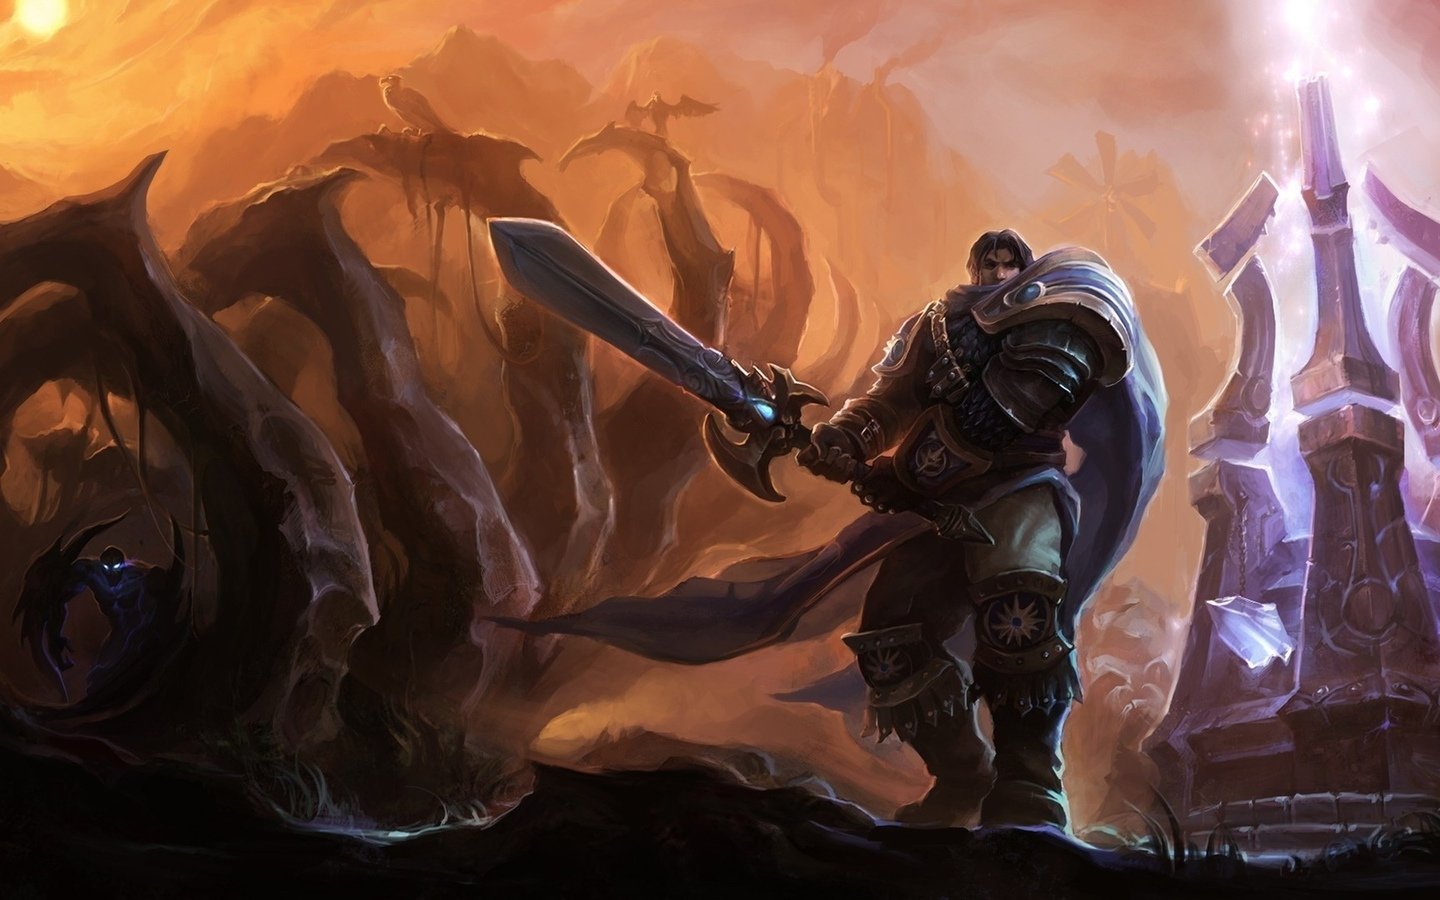 dominion, league of legends, nocturne, garen